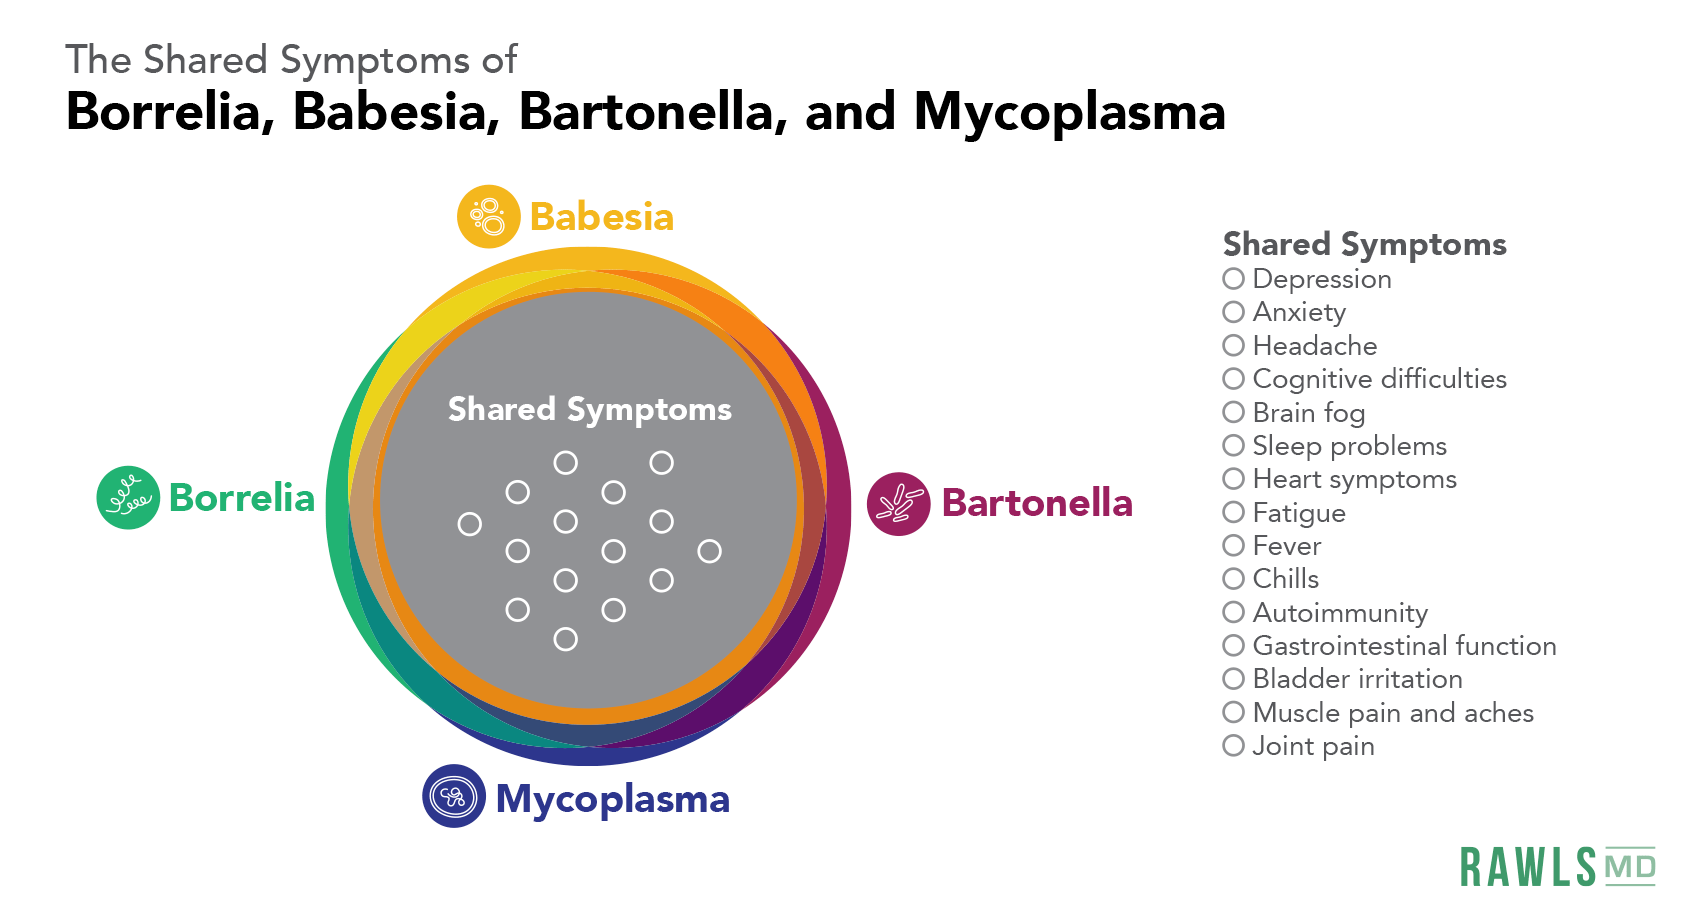 overlapping circle chart os shared symptoms: depression, anxiety, headache, cognitive difficulties, brain fog, sleep problems, fatigue, fever, chills, autoimmunity, gastrointestinal function, bladder irritation, muscle pain, joint pain